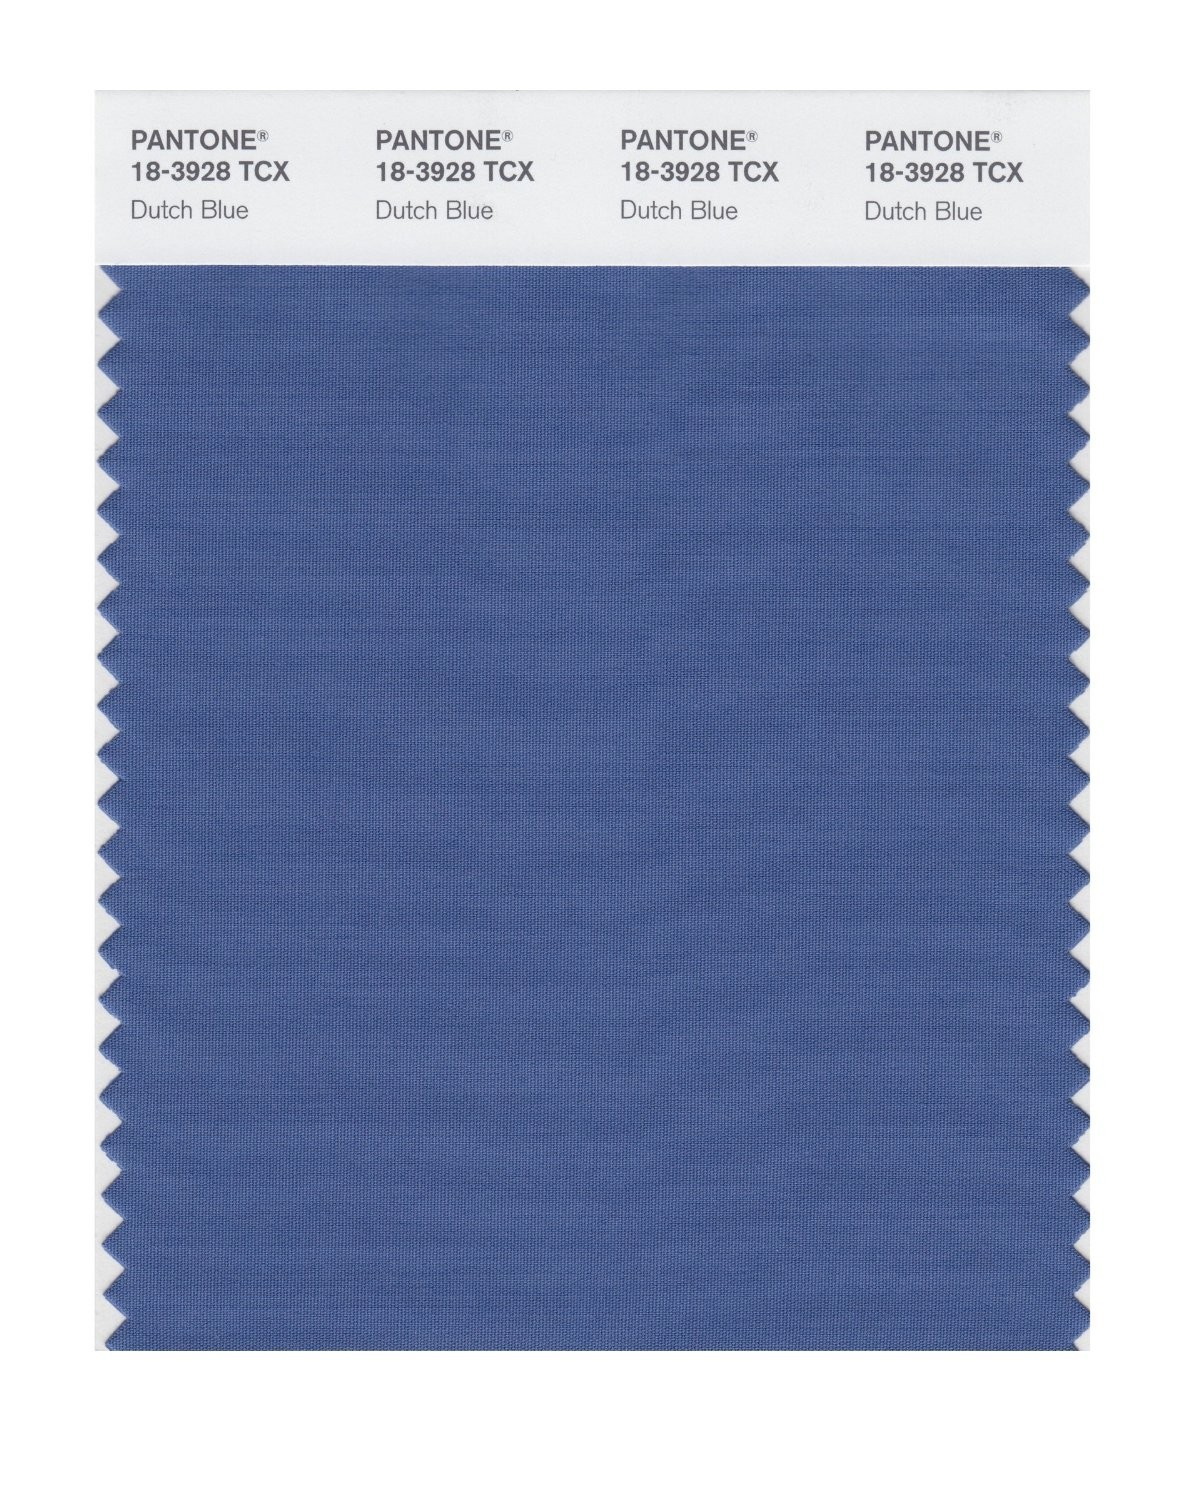 Pantone 18-3928 TCX Swatch Card Dutch Blue